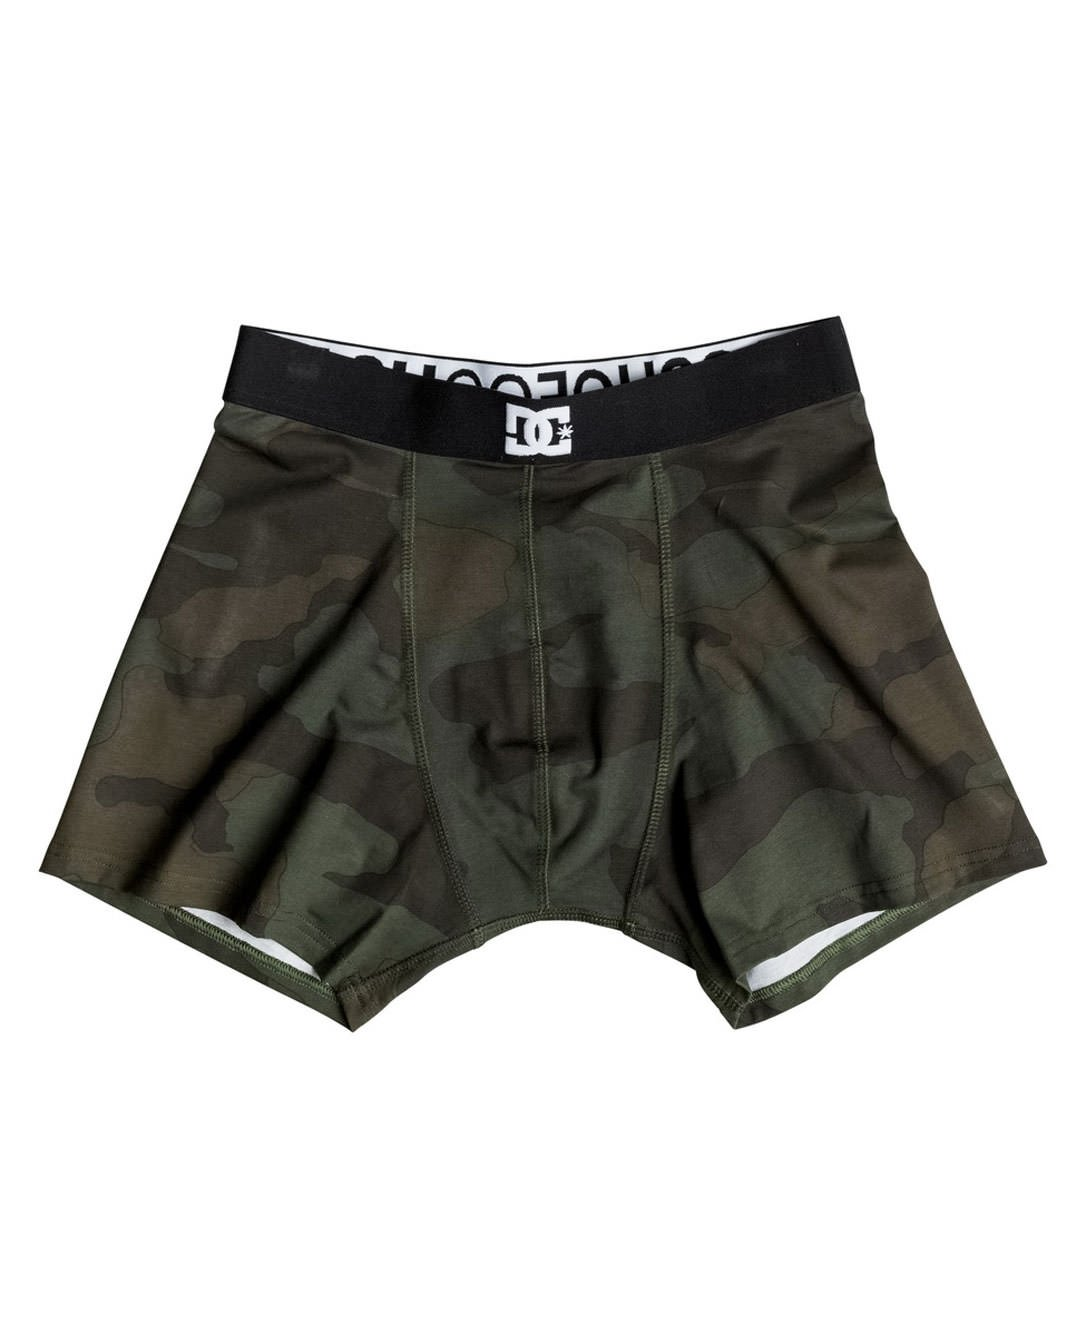 DC SHOES BOXER WOOLSEY KTF2 - LM BOARD STORE